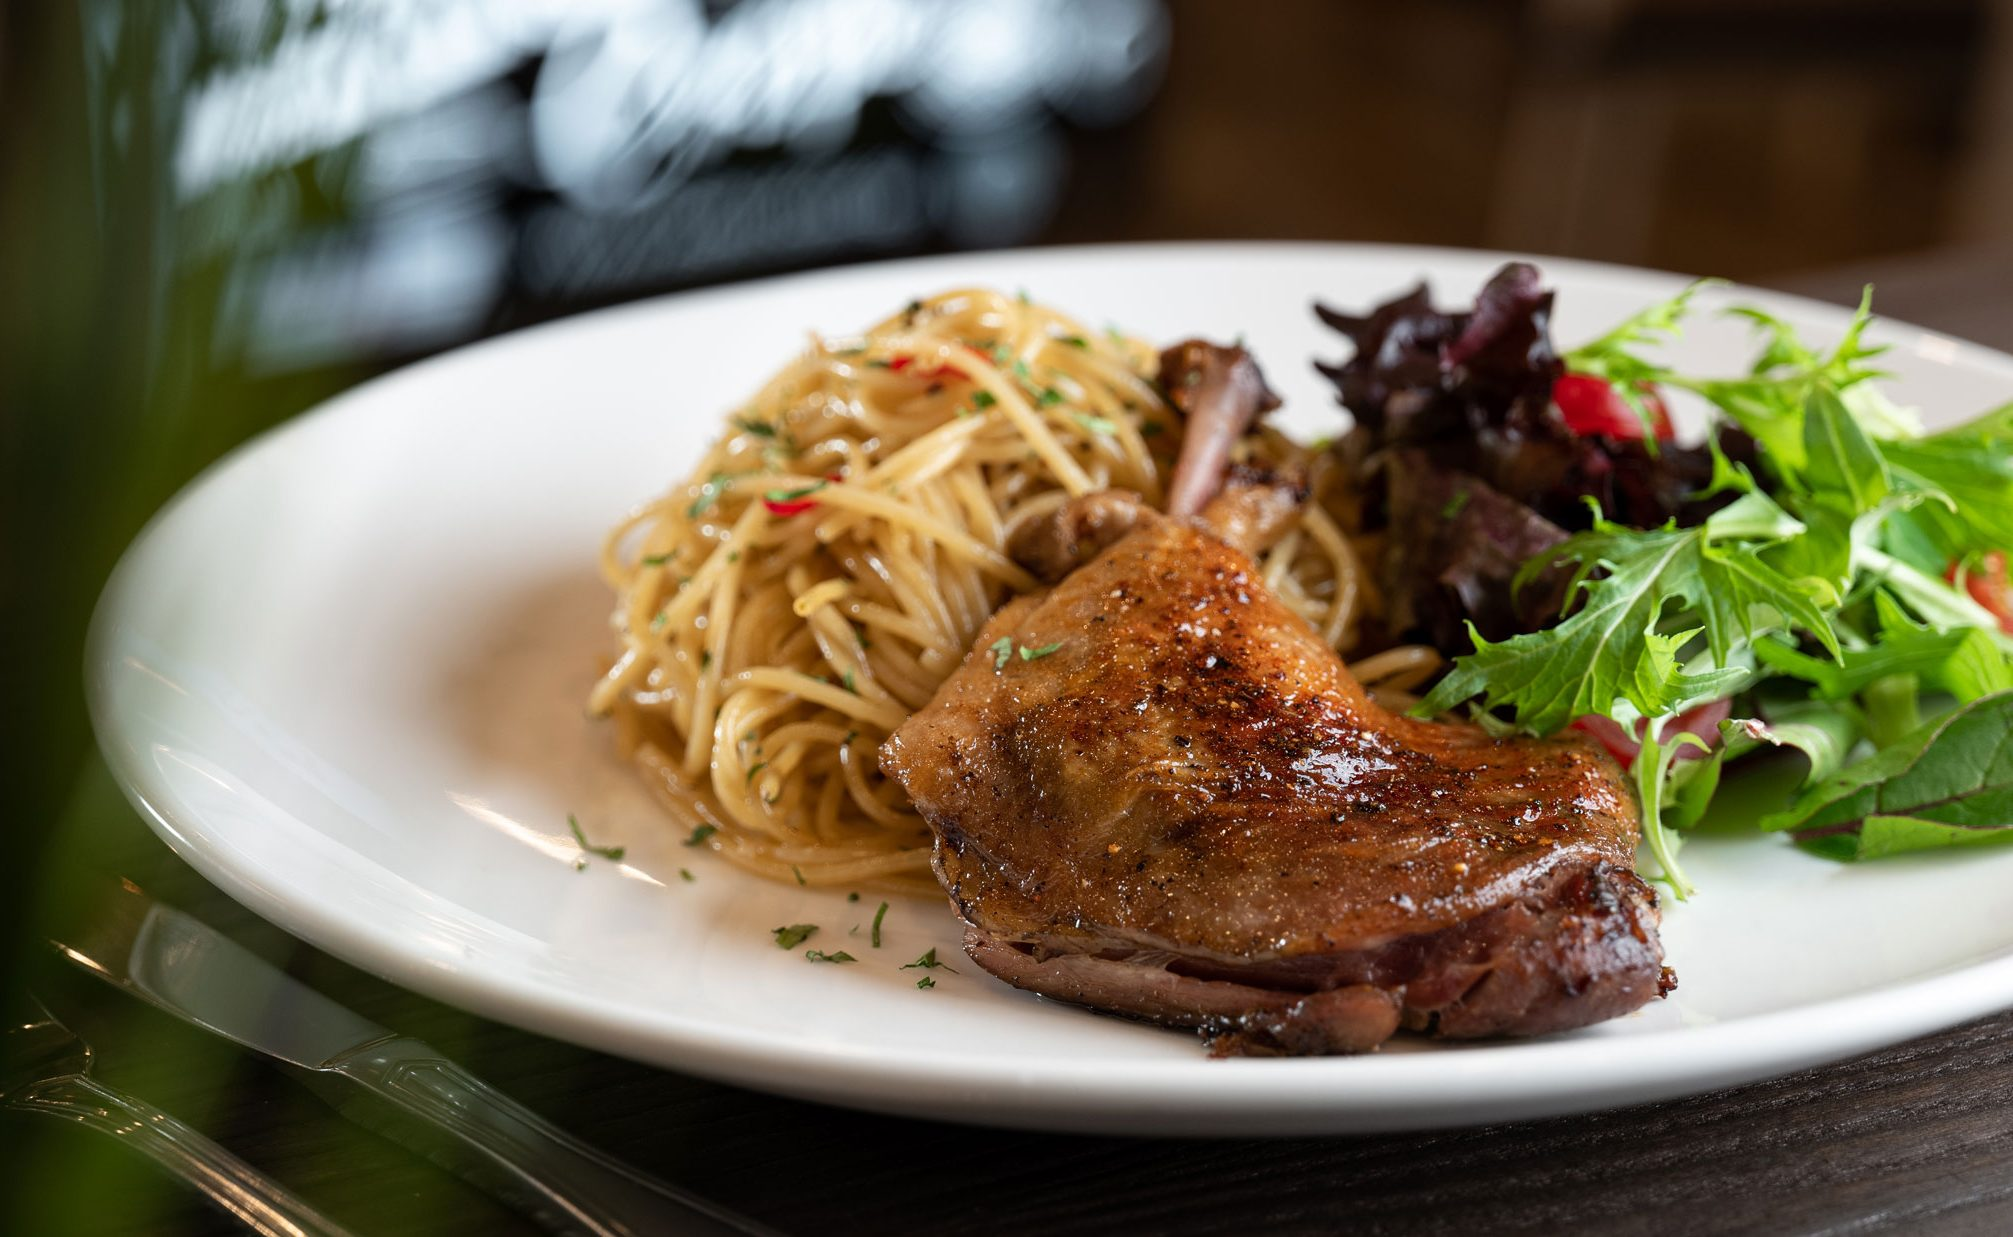 A white dinner plate filled with duck, spaghetti and salad.